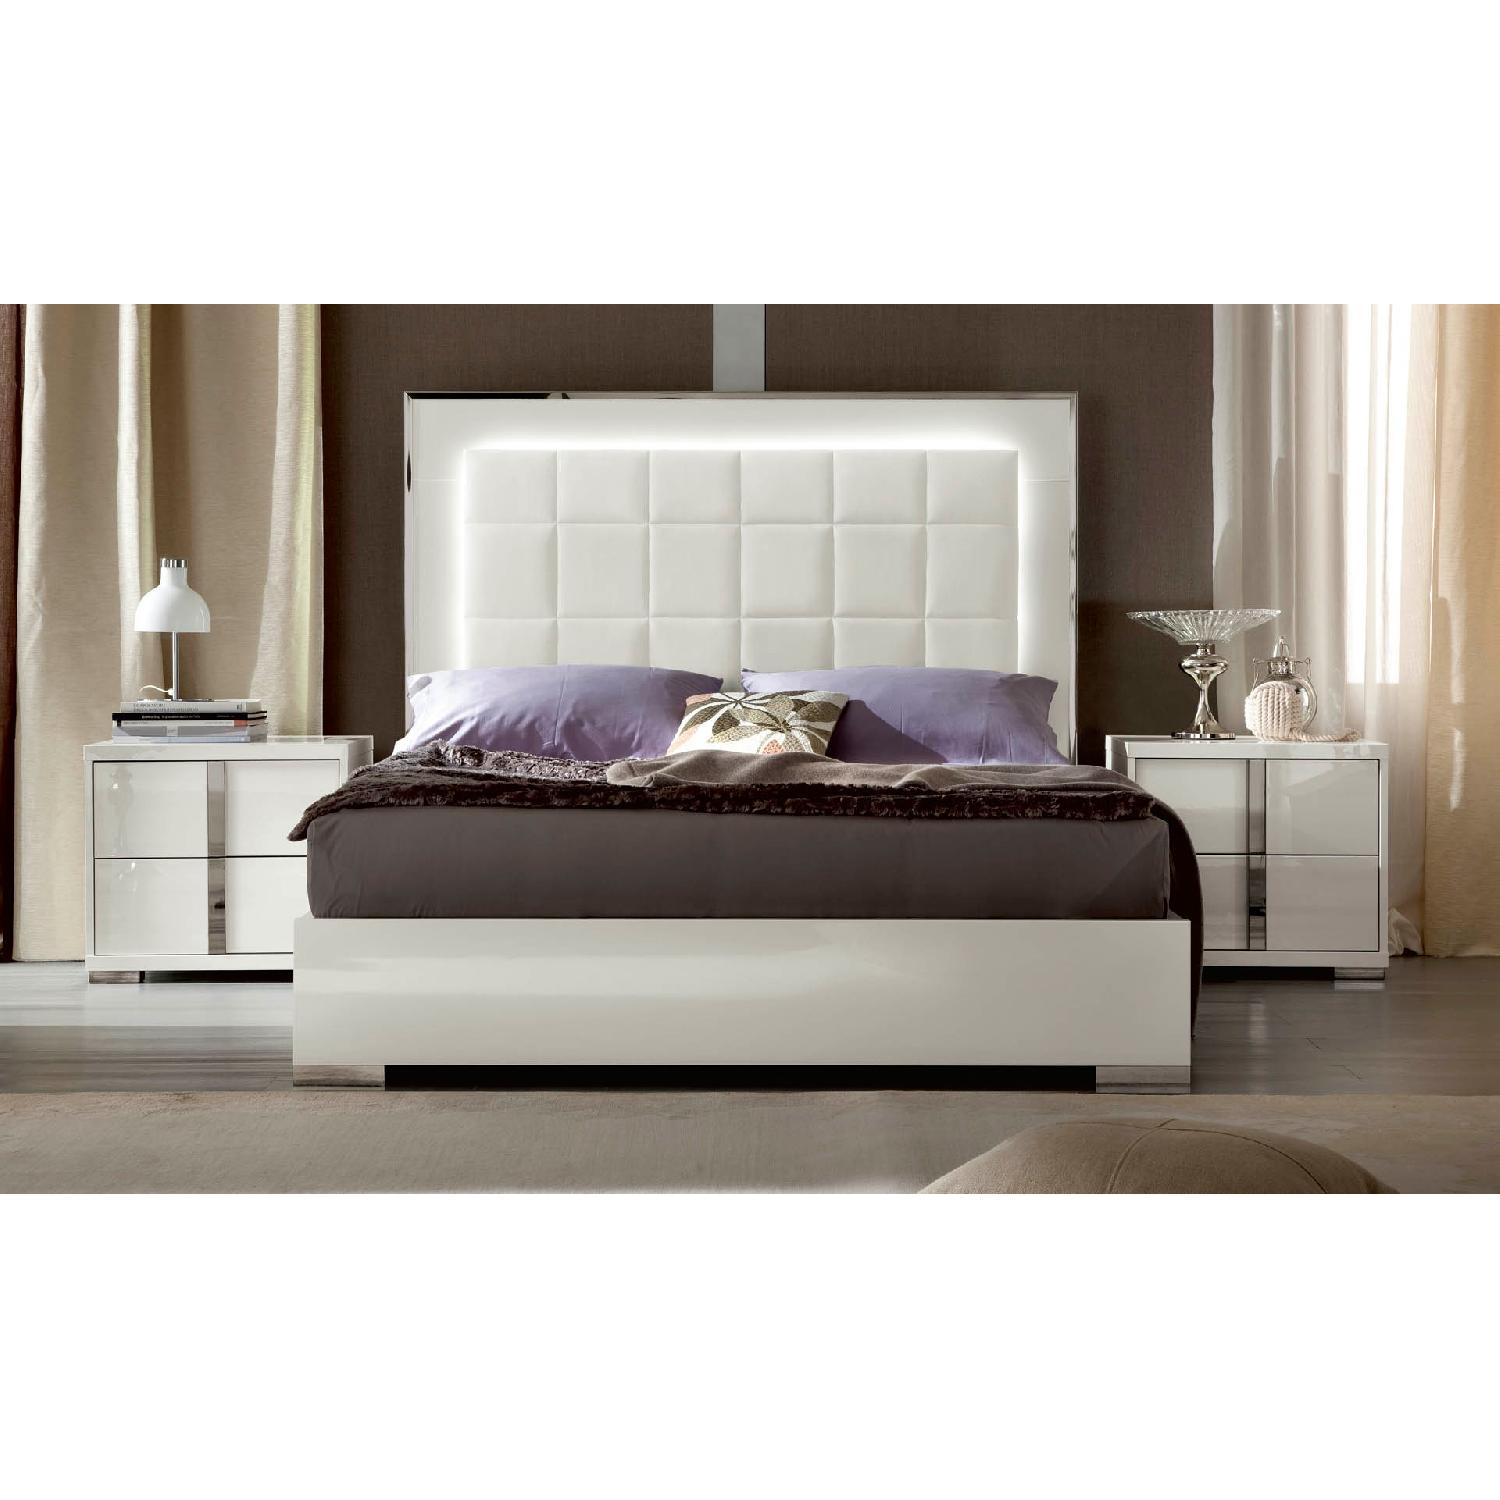 Alf Imperia King Size Bed-0